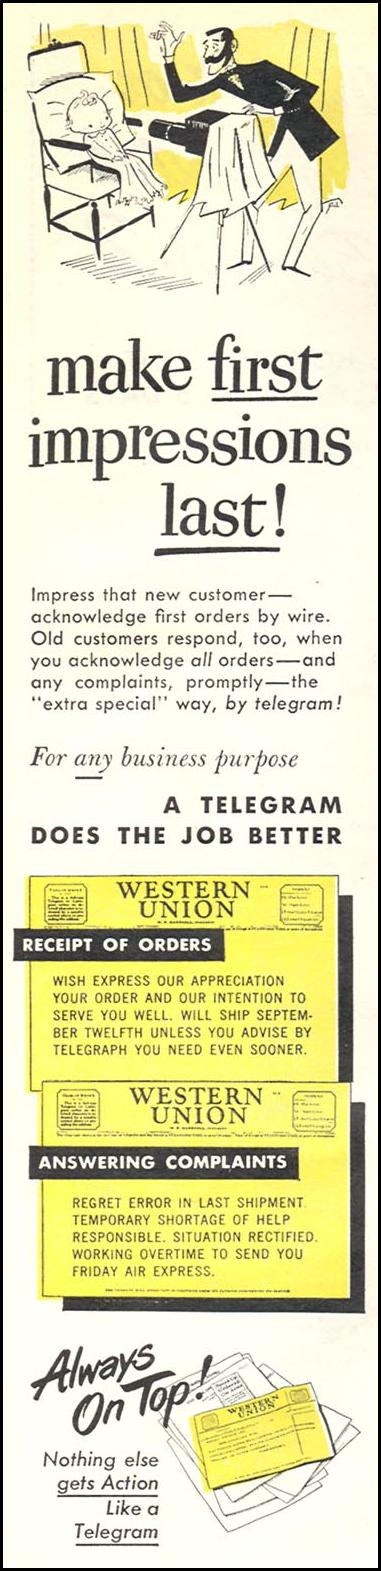 TELEGRAM SERVICE NEWSWEEK 08/20/1951 p. 76